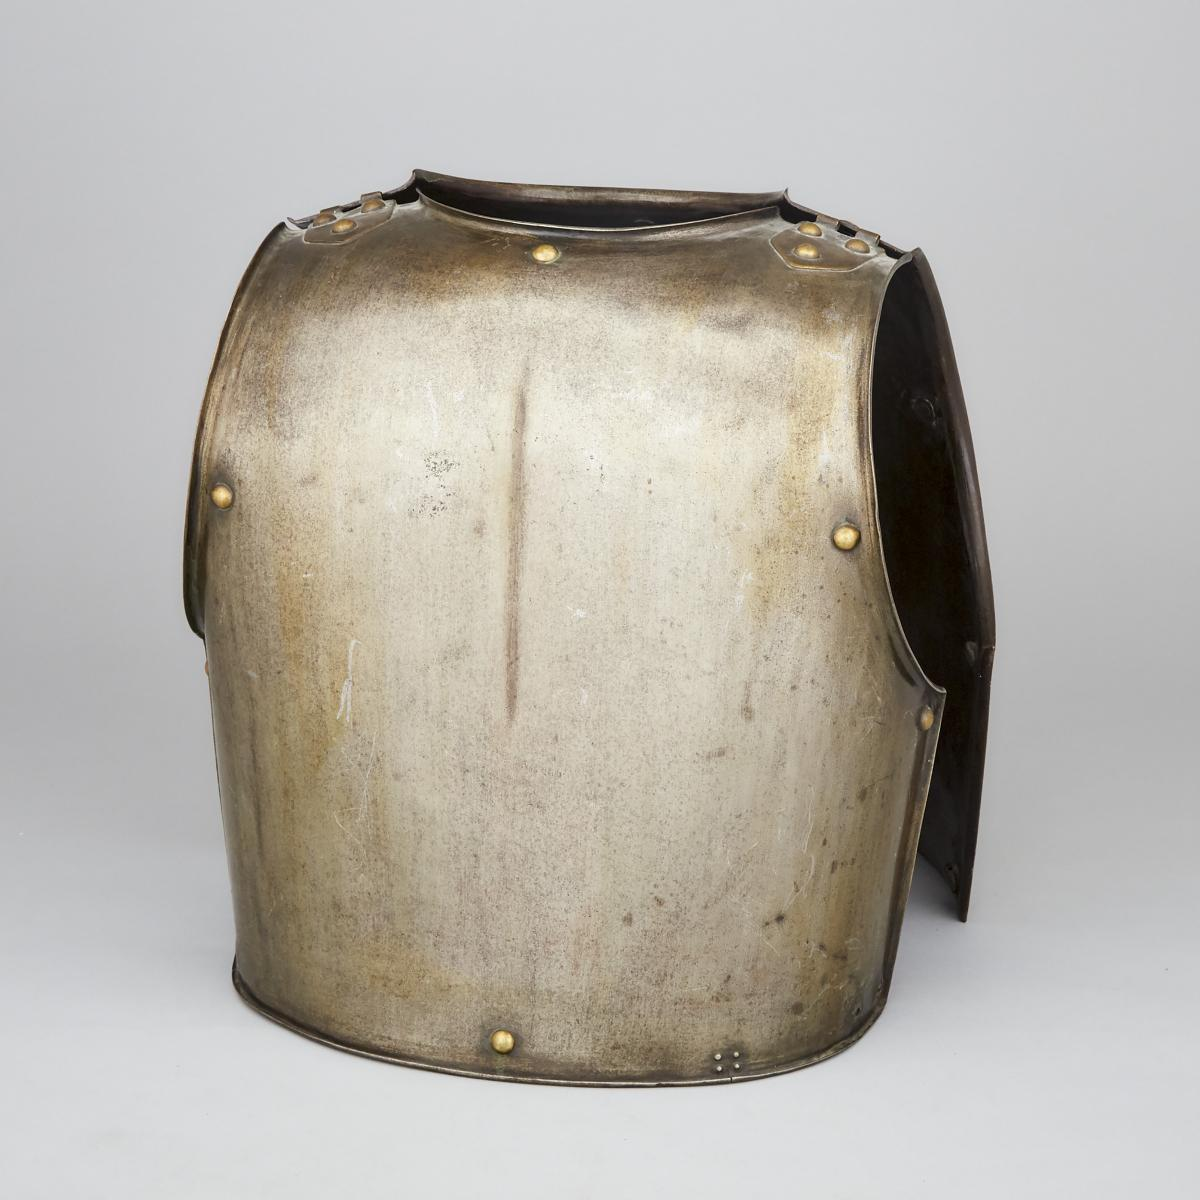 French Carabinier-a-Cheval Officer's Cuirass, Klingenthal Armory, 1832, height 17.5 in — 44.5 cm (2 - Image 2 of 5